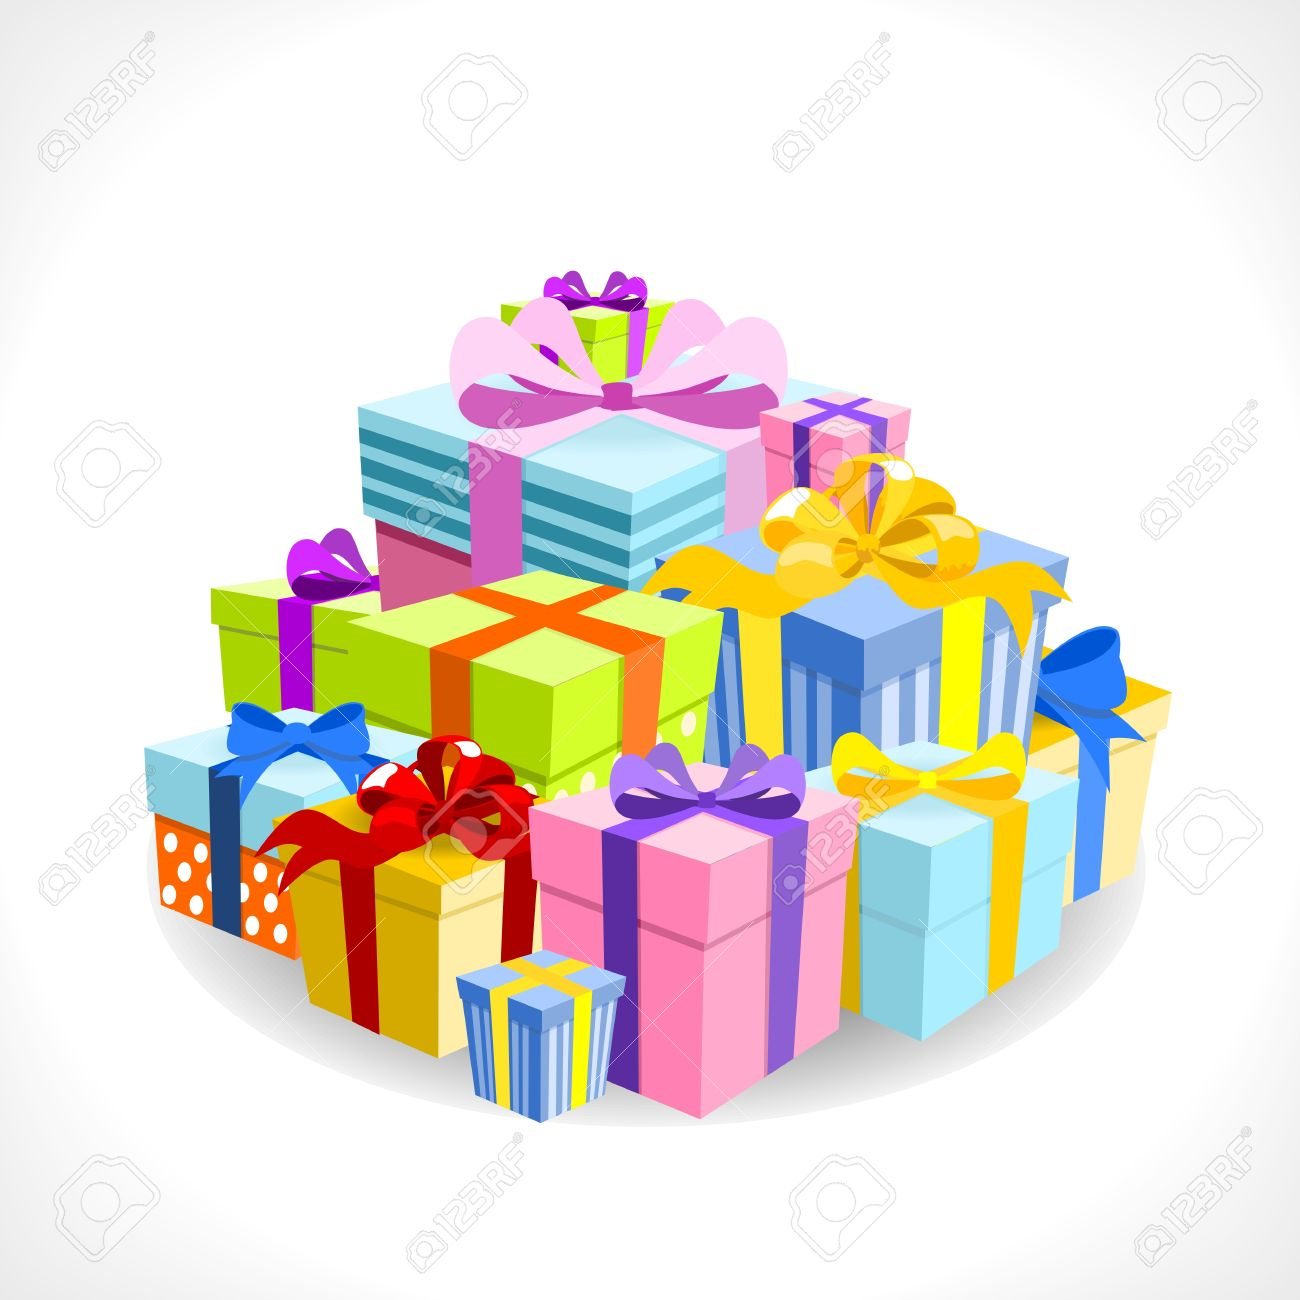 pile of colorful gifts on white background - vector illustration Stock Vector - 14526863